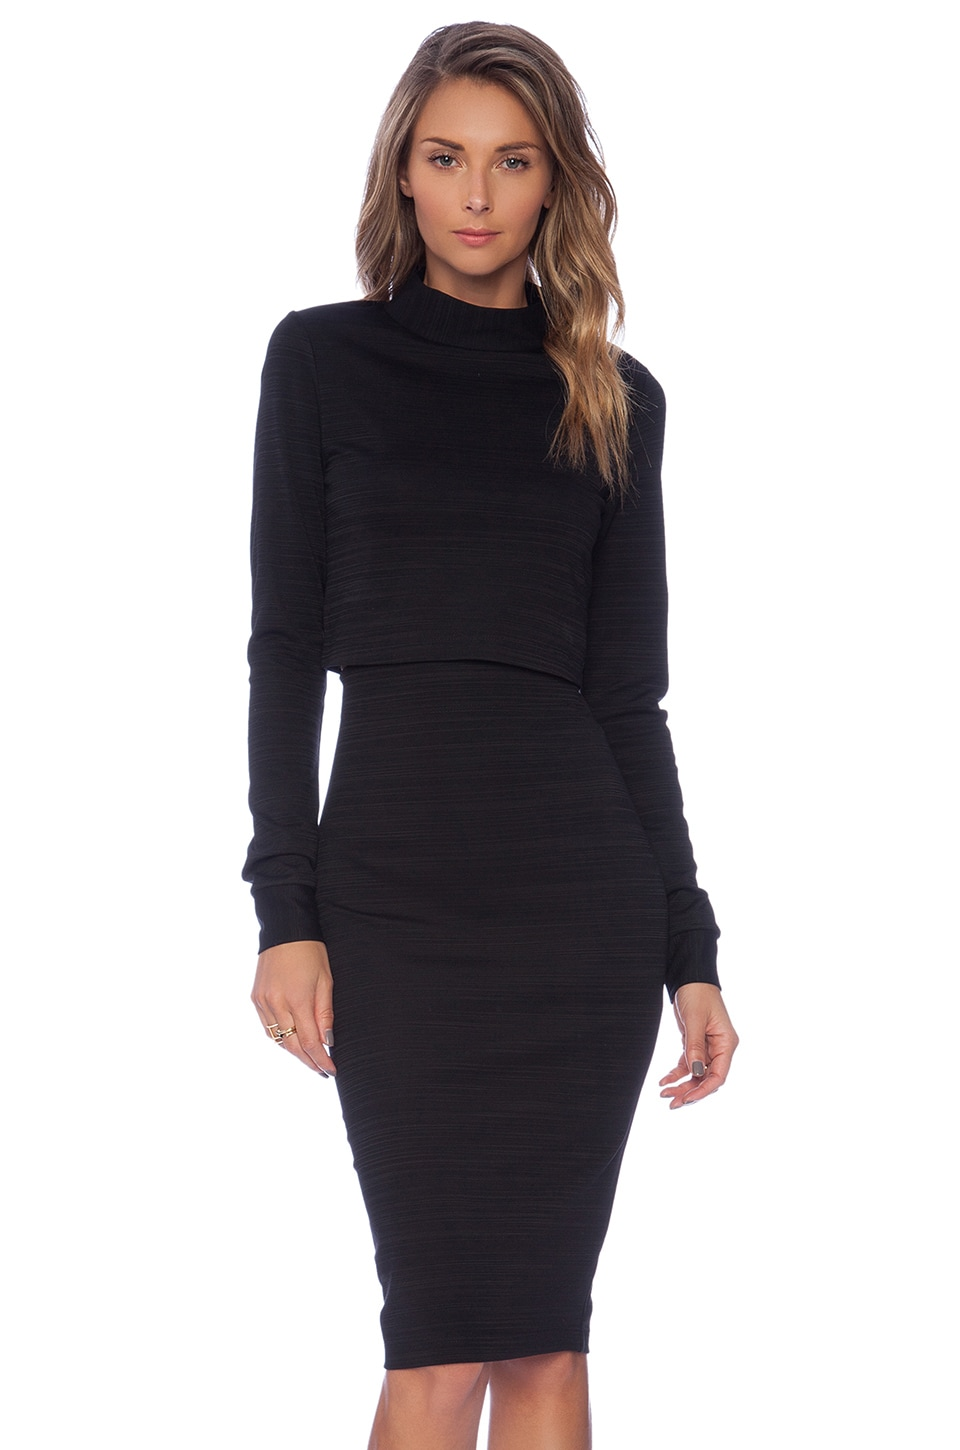 Black Halo Dress Sale